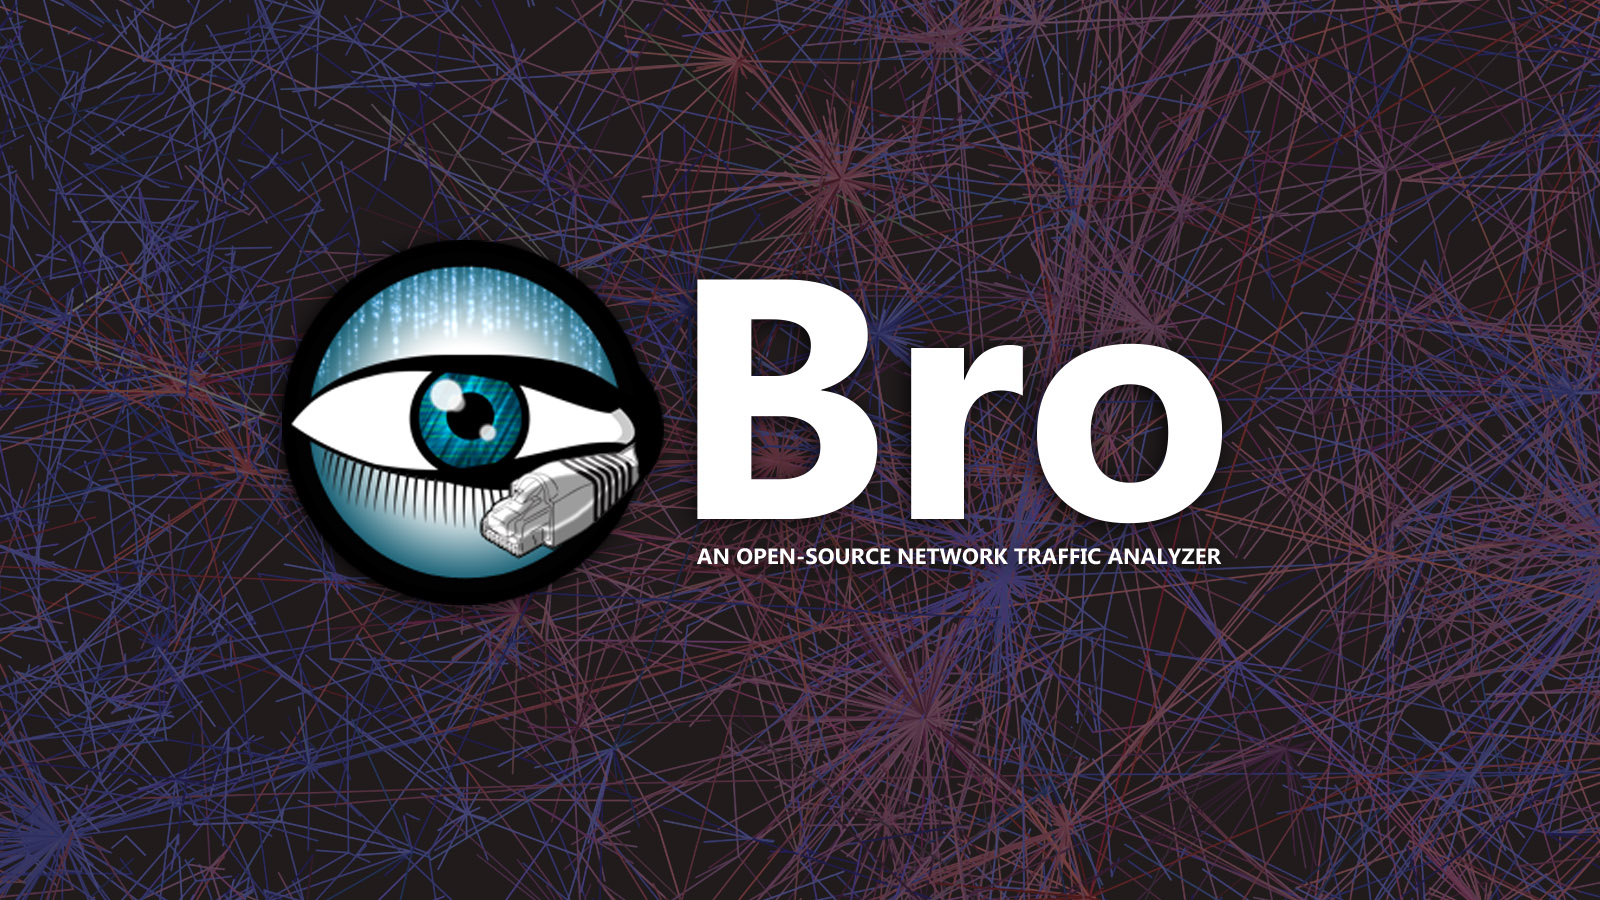 Bro - An Open-source Network Traffic Analyzer